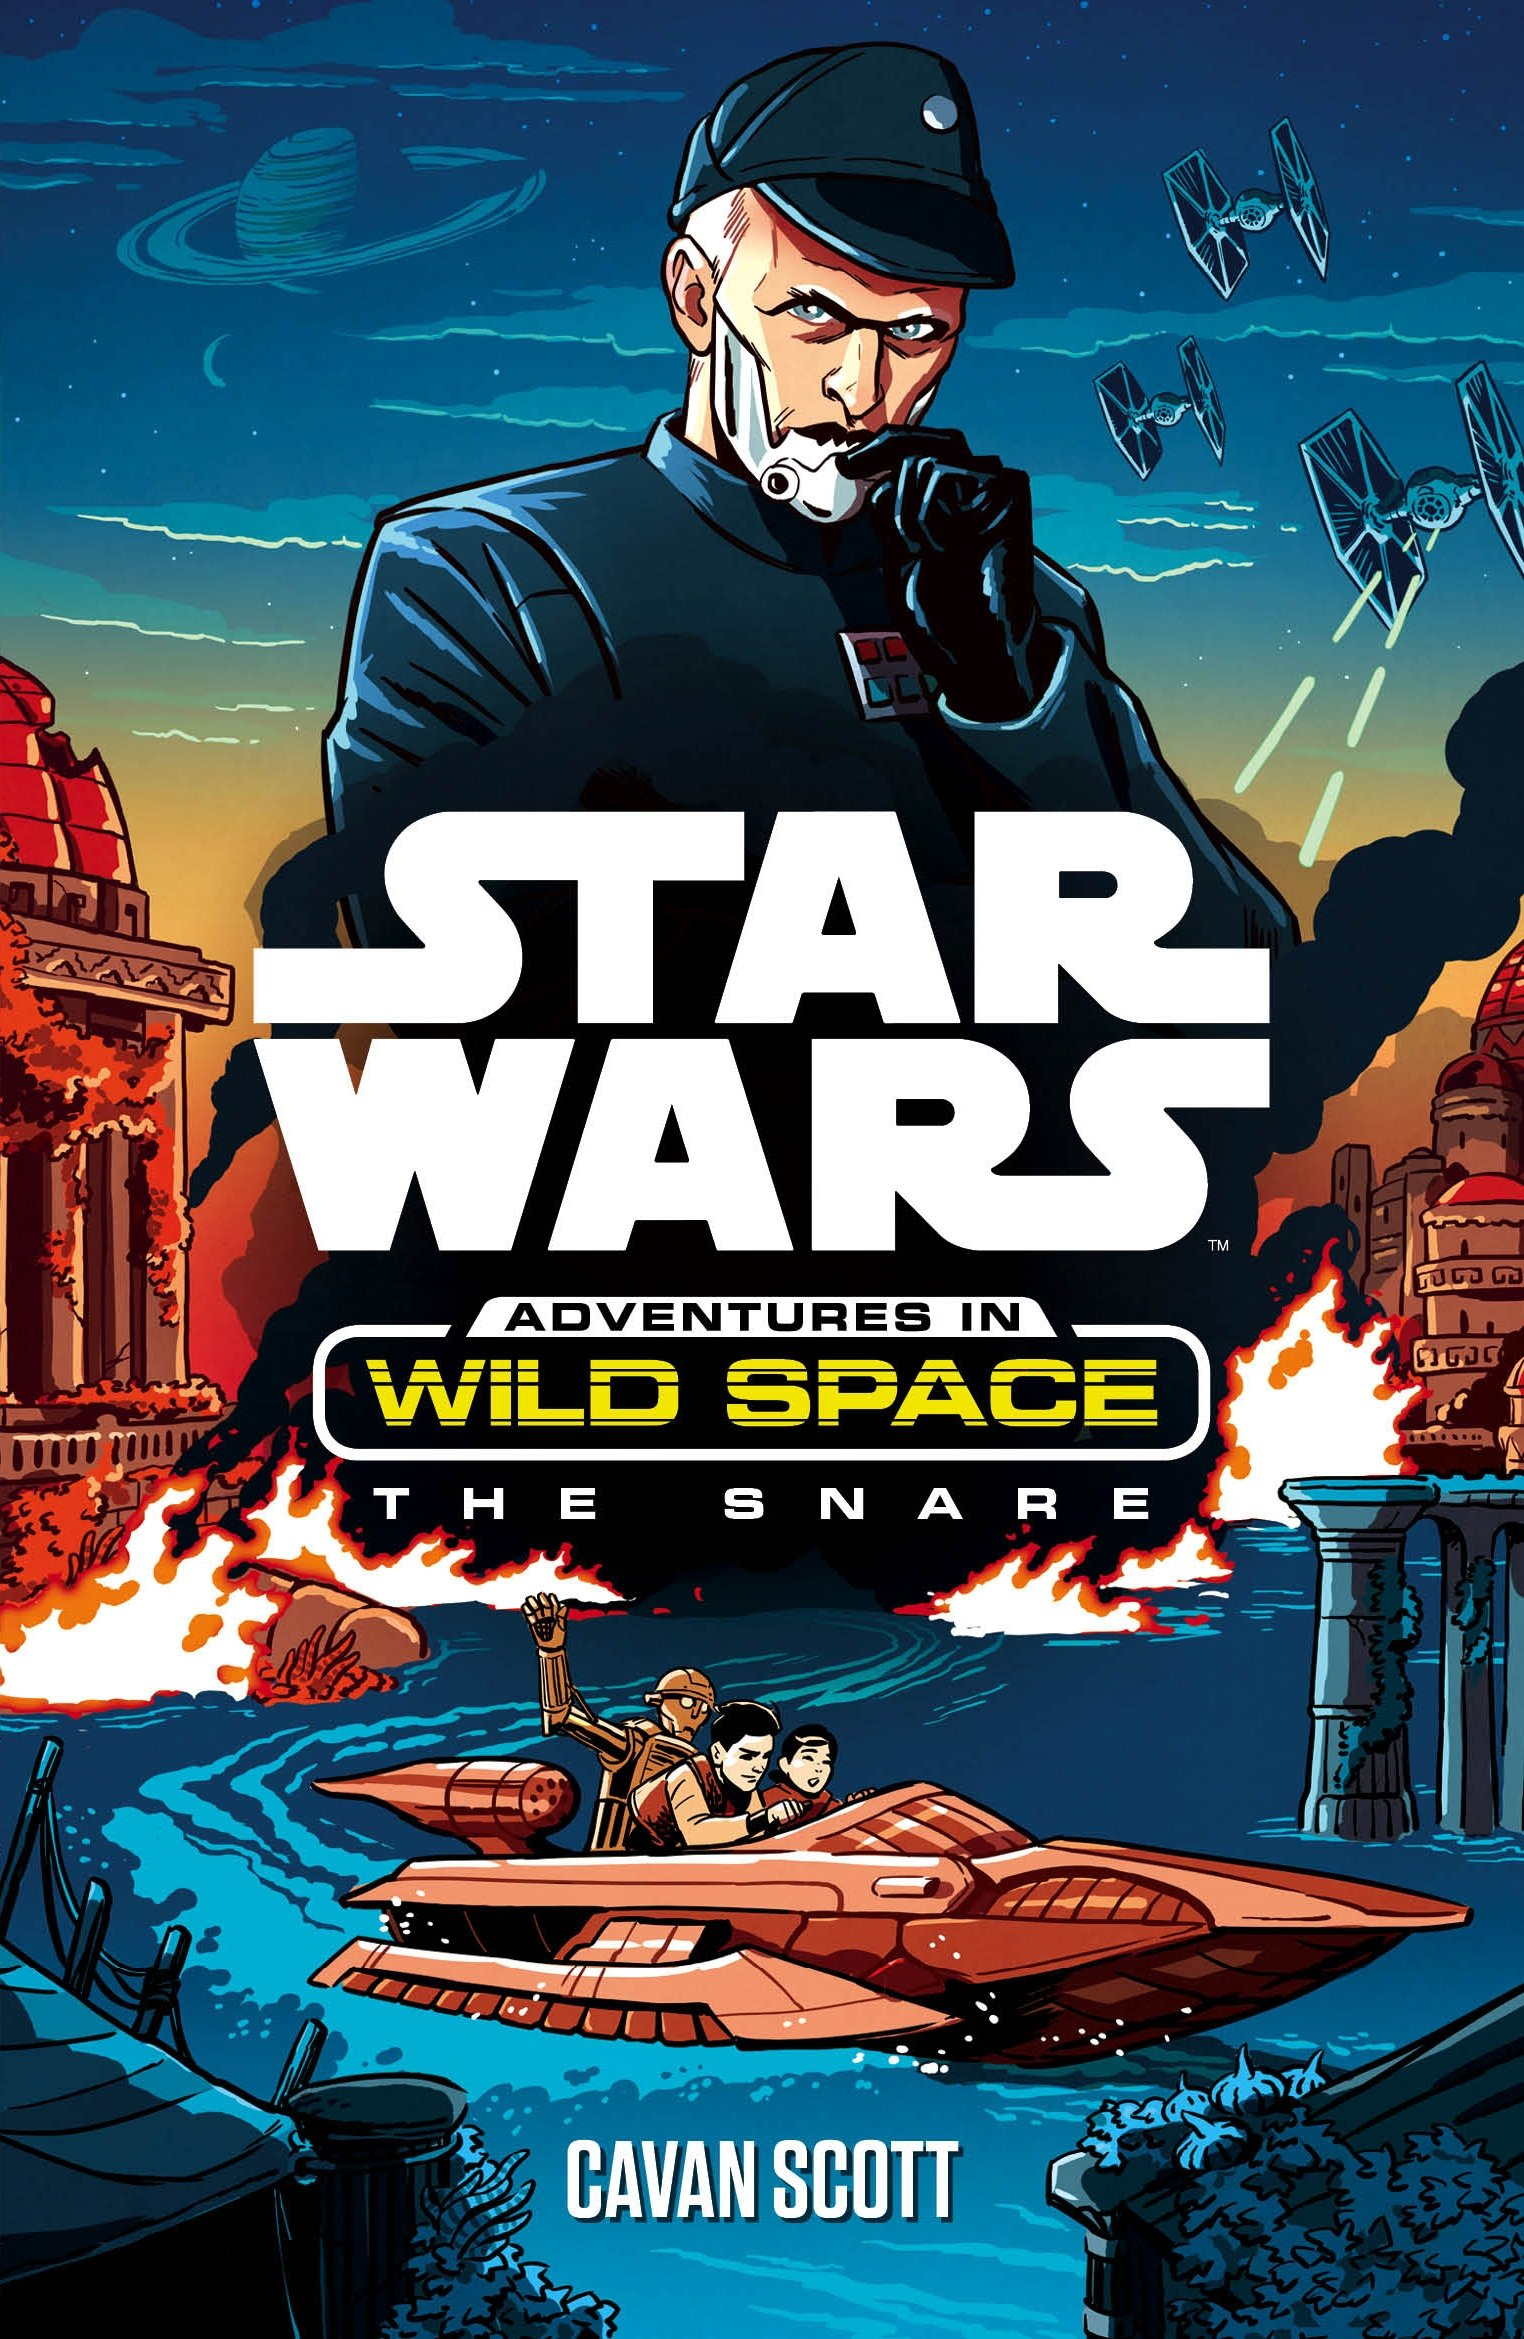 Star Wars: The Snare (Star Wars: Adventures in Wild Space) pdf